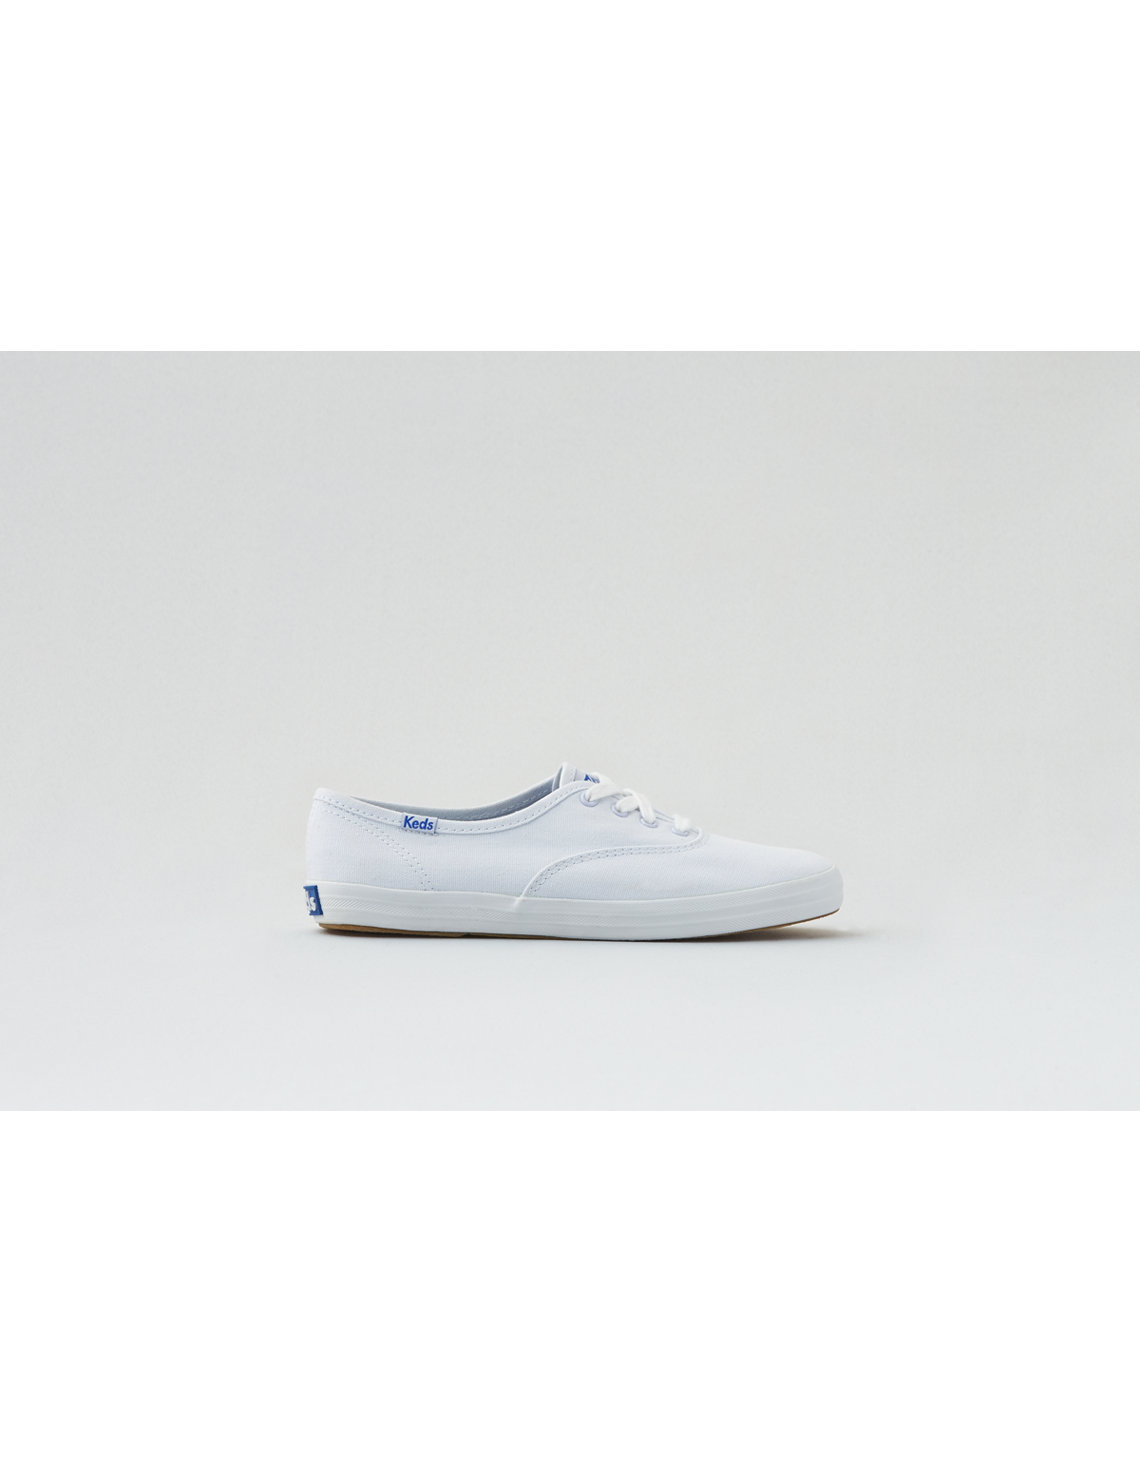 15795da70df Keds Champion Originals Sneaker. Placeholder image. Product Image